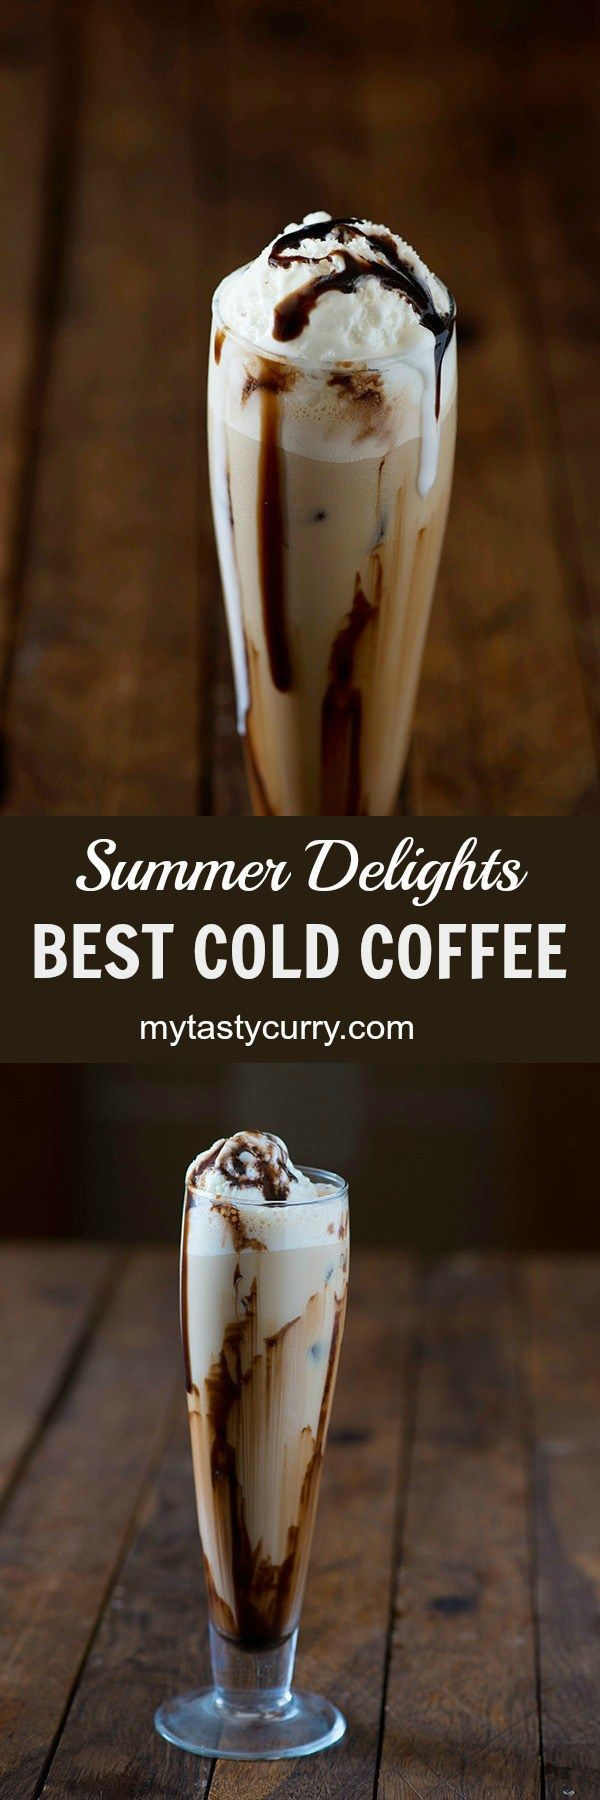 Best Cold Coffee recipe in 5 Minutes. Cold coffee/Iced Coffee recipe which is creamy and frothy just like you get in your favorite cafe. Learn to make a perfect glass of cold coffee with step by step method shown in the video